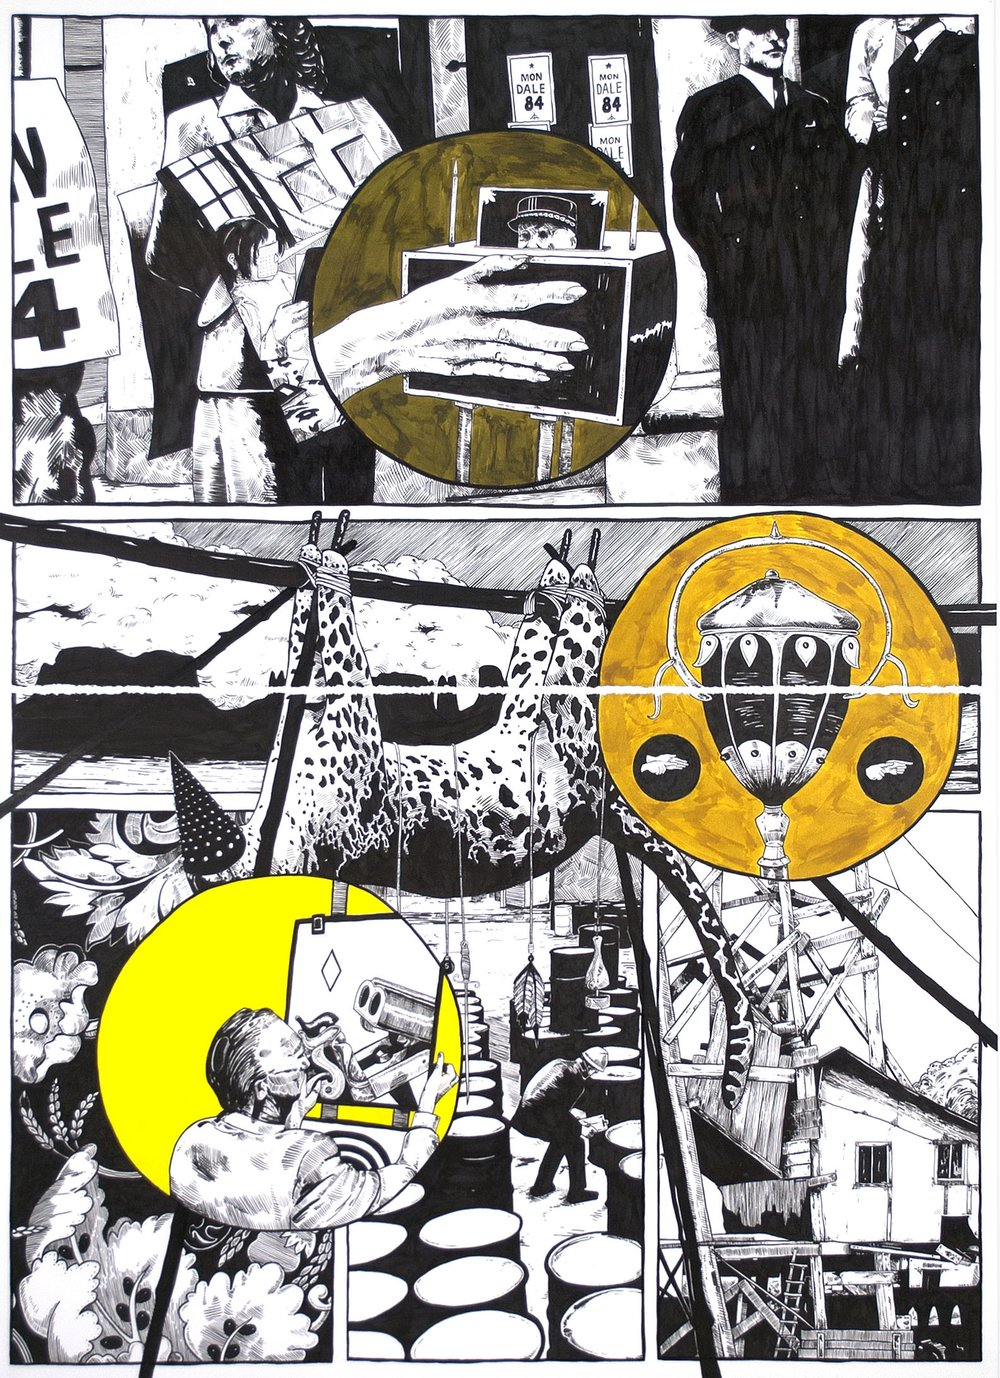 "Lower Than the Lowest Animal #8, 2014 60 x 44"" (diptych), india ink on paper"